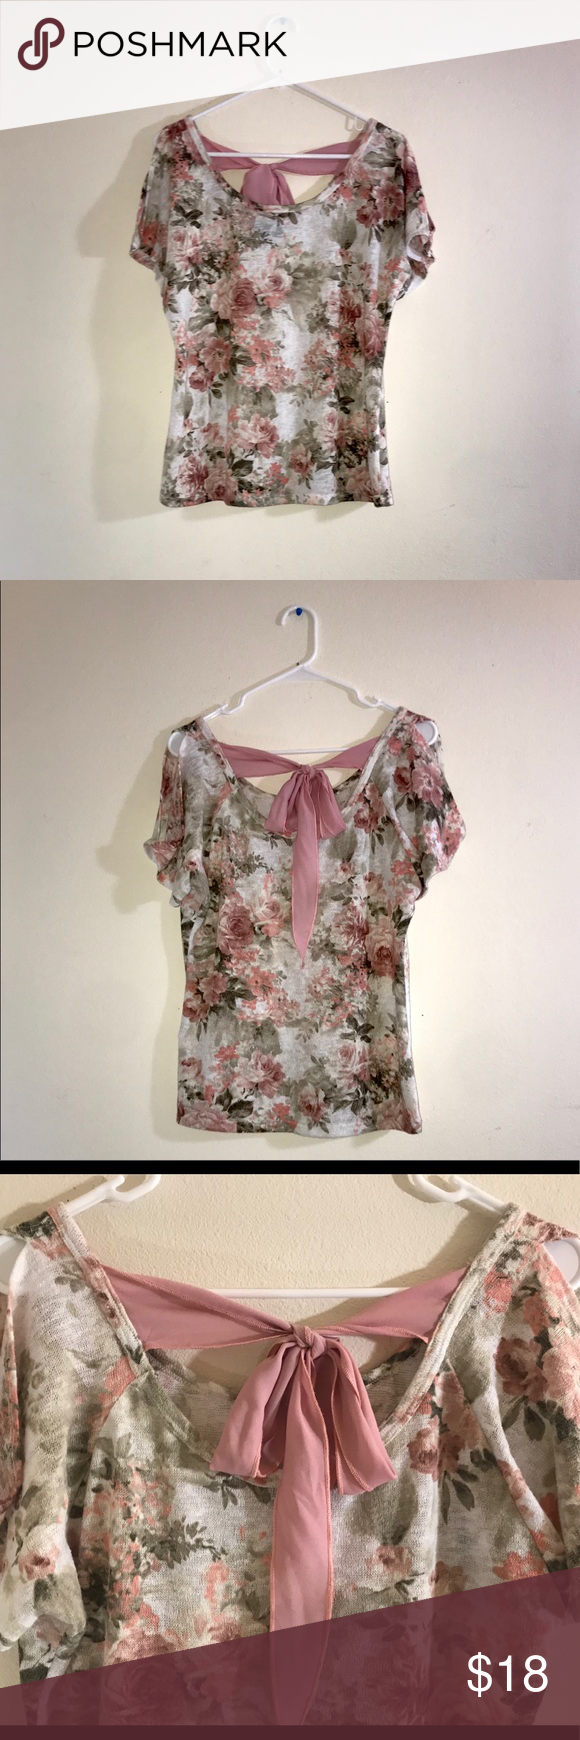 NAIF Short Sleeve Floral Top NAIF Brand Shirt Size L Short Sleeves w/ narrow rolled cap Soft White w/ Floral Print Scoop neck in front with lower scoo…